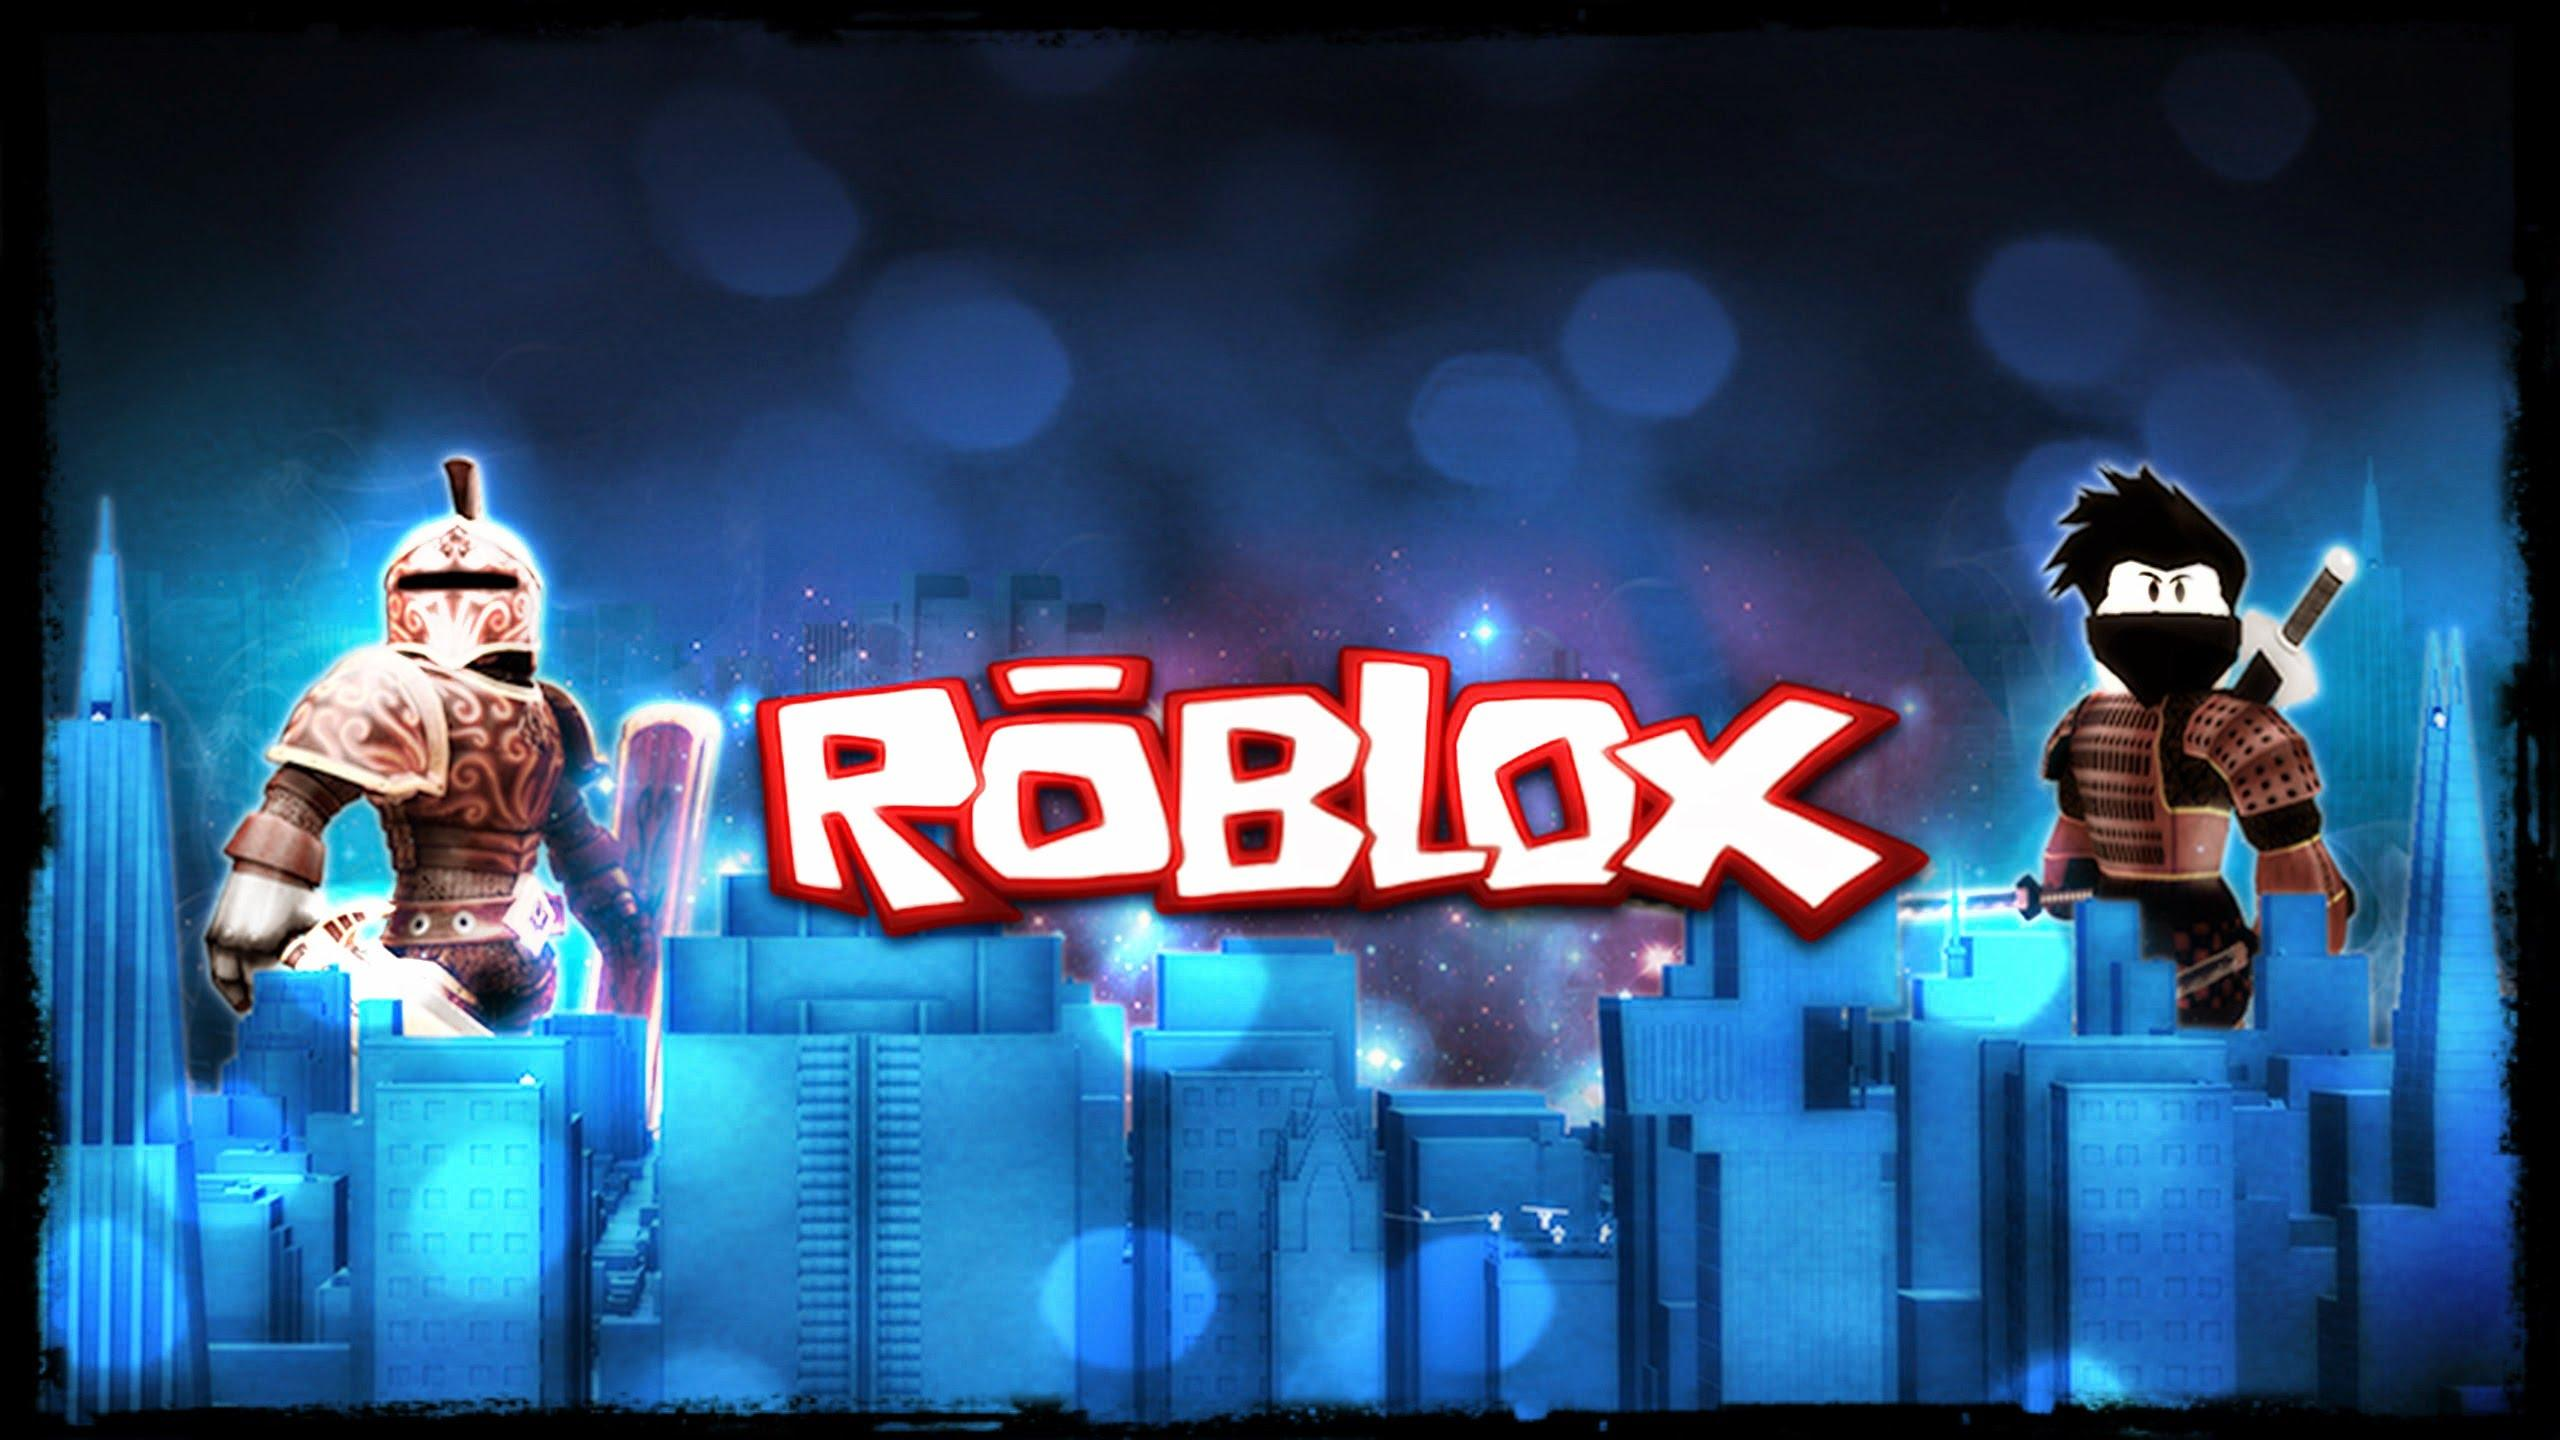 Roblox Cool Wallpapers Wallpaper Cave